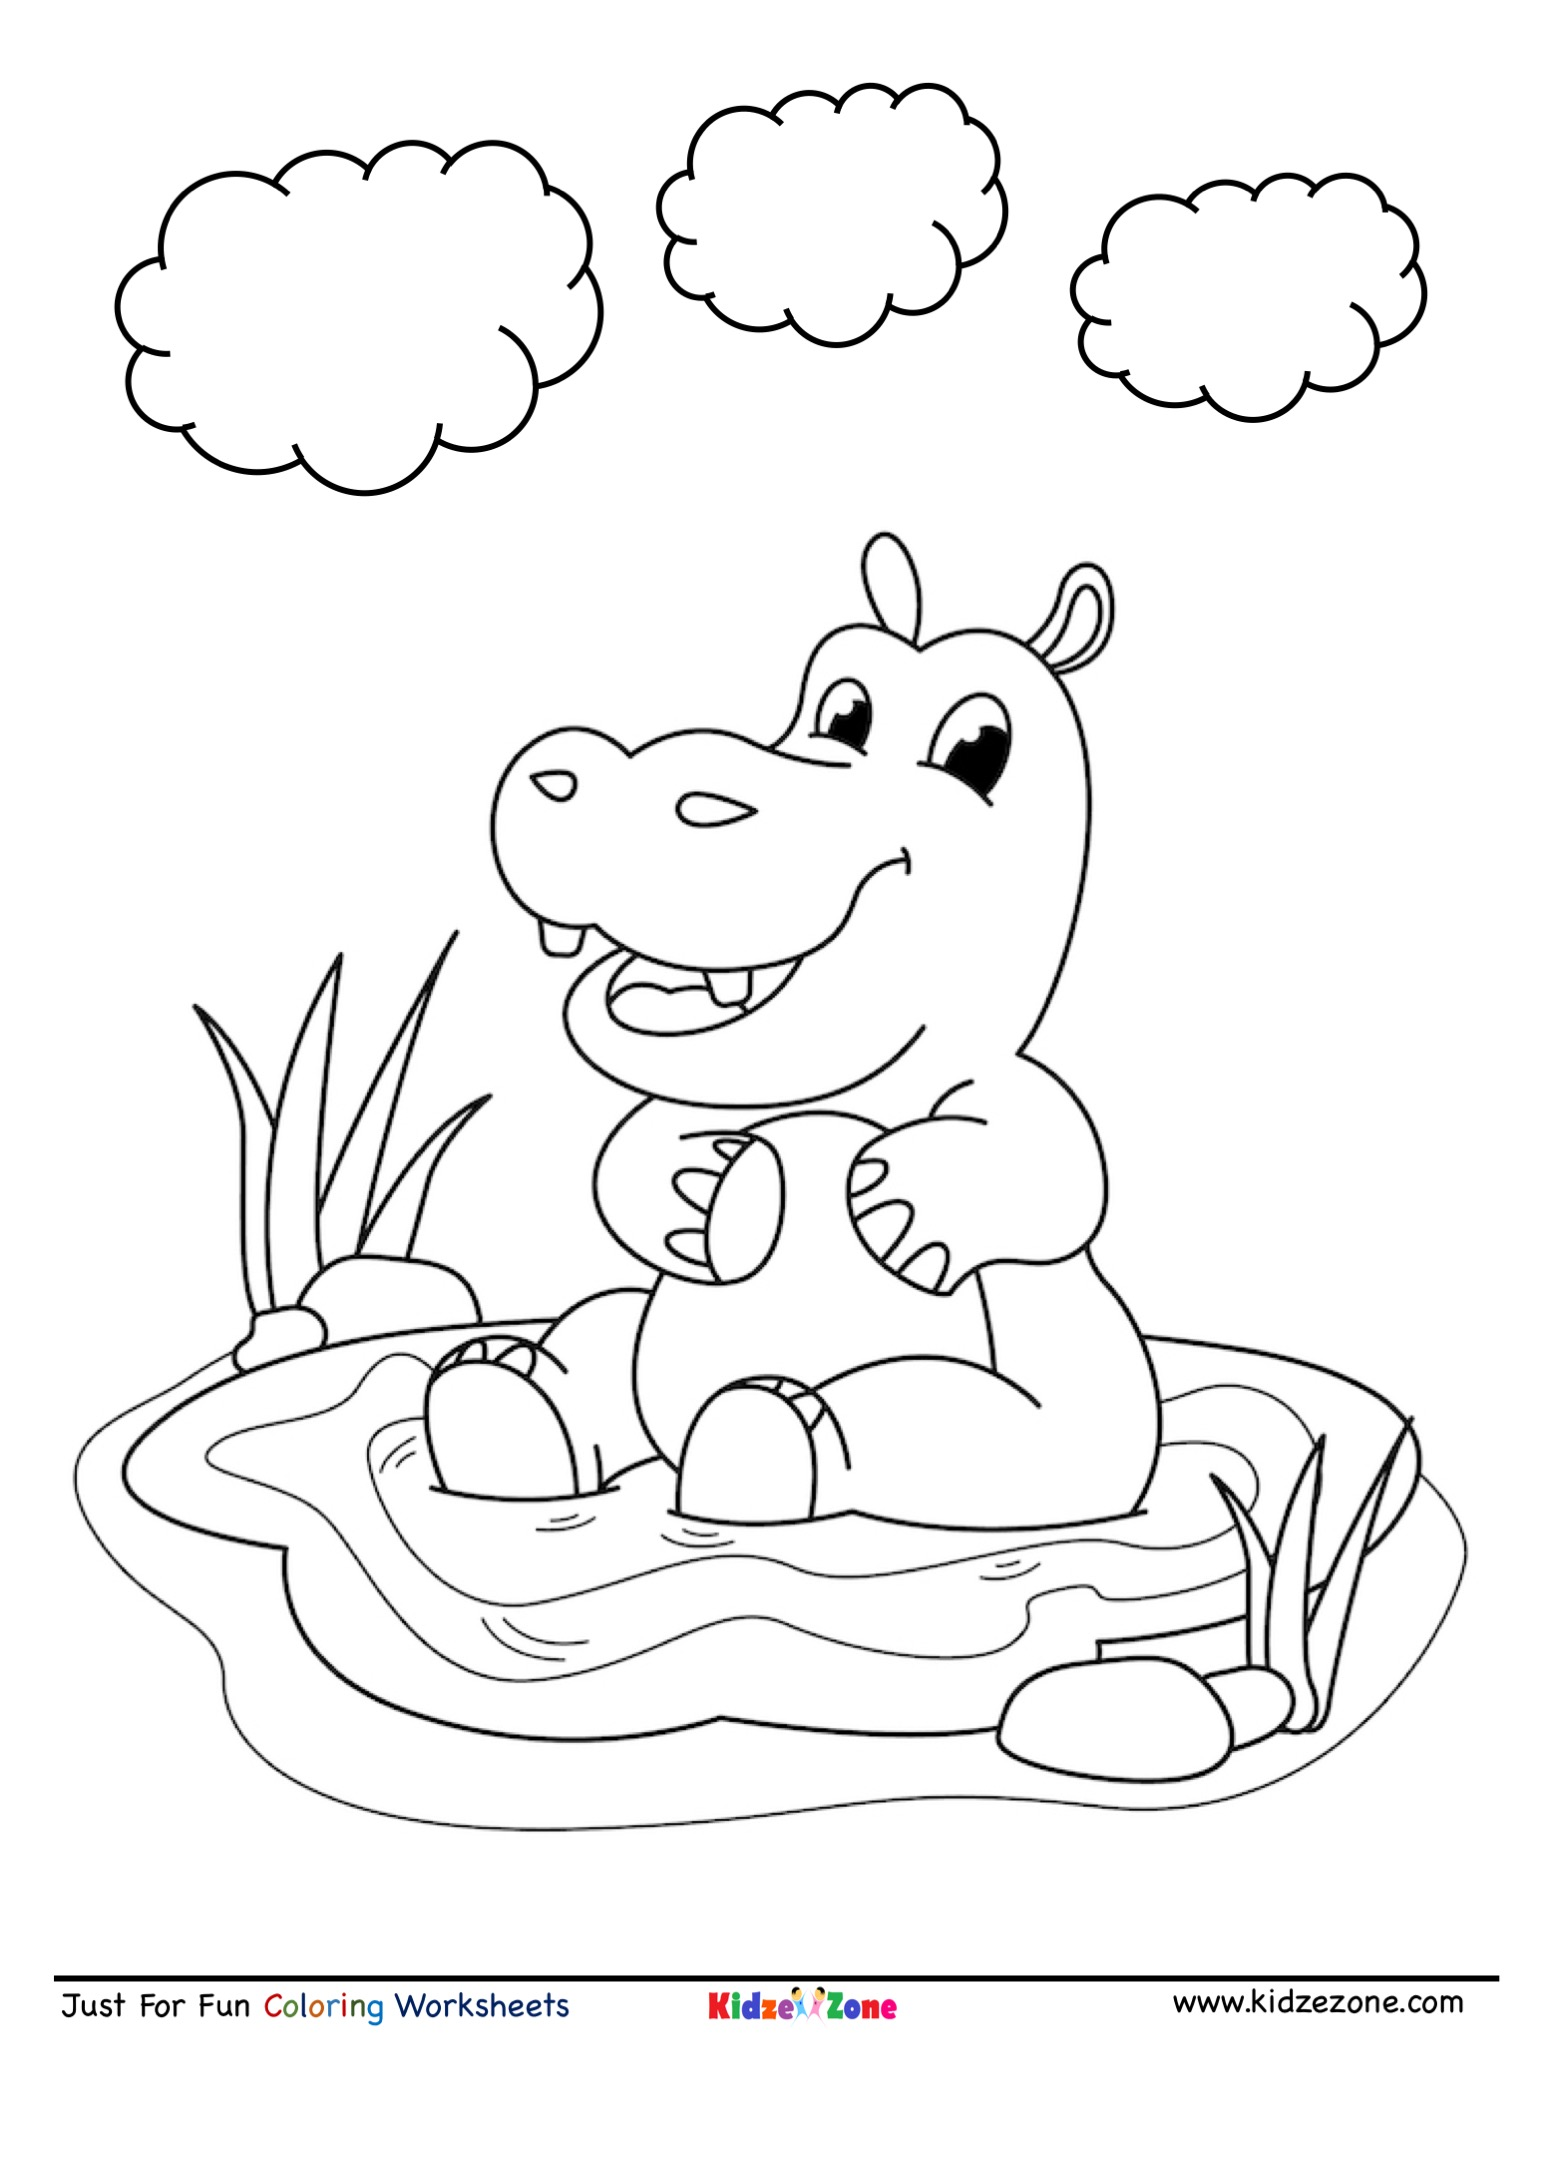 Hippo Cartoon Coloring Page